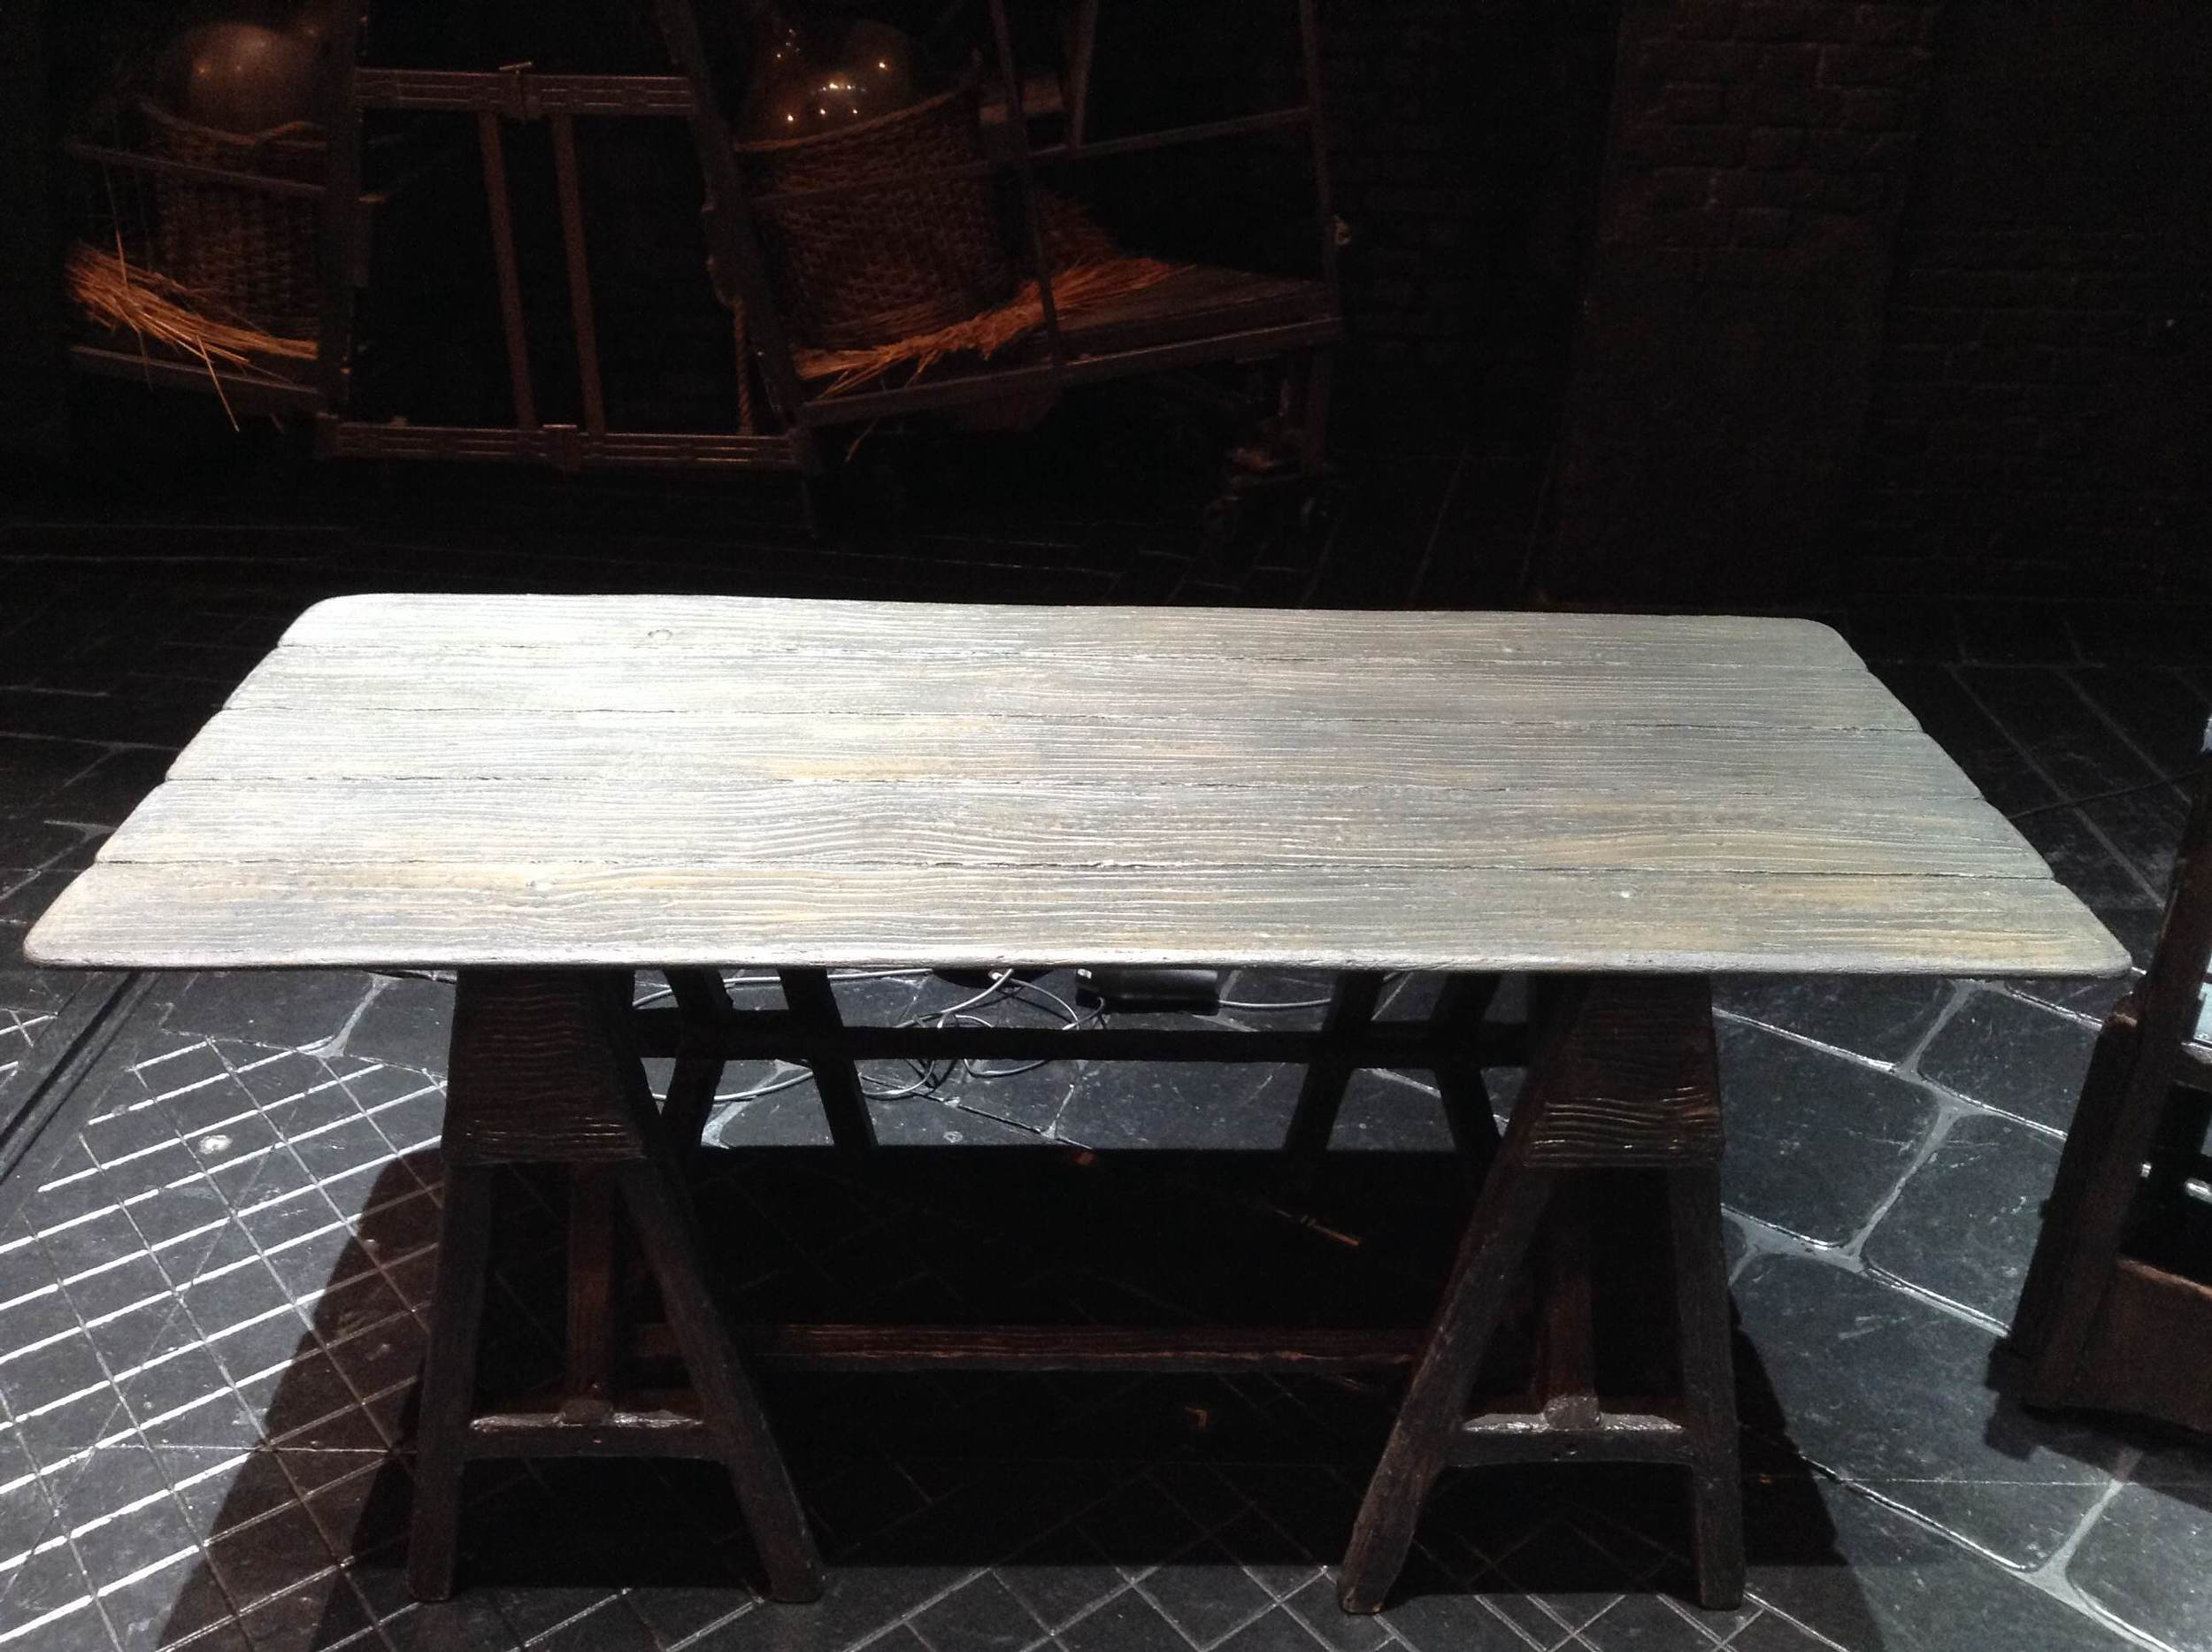 Table repair at Les Mis1.jpg